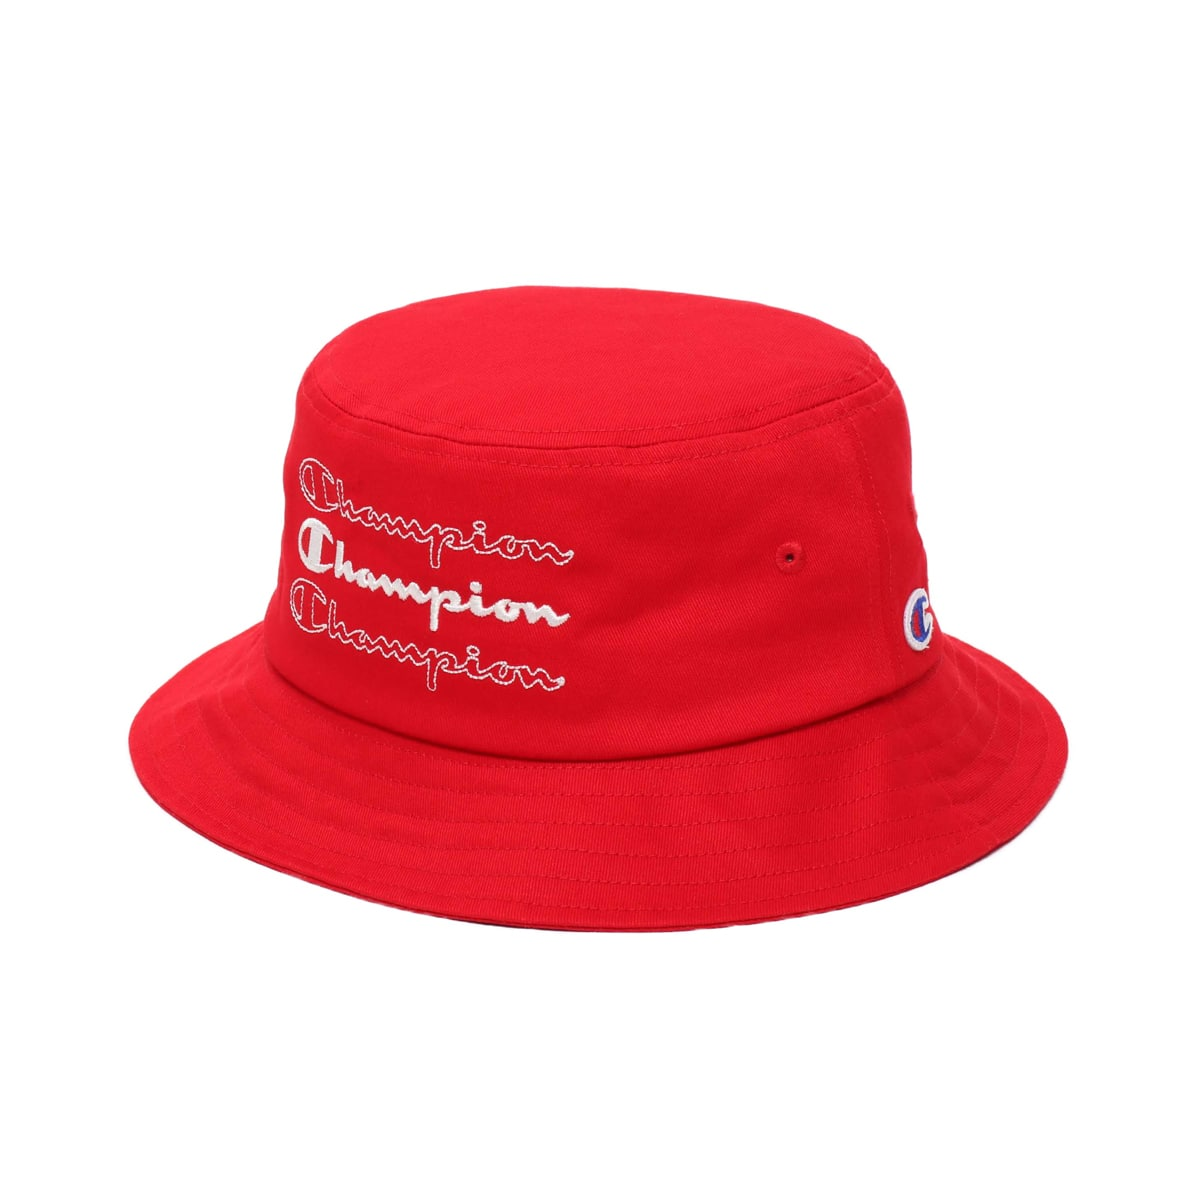 CHAMPION x ATMOS LAB BUCKET HAT RED 19FW-S_photo_large